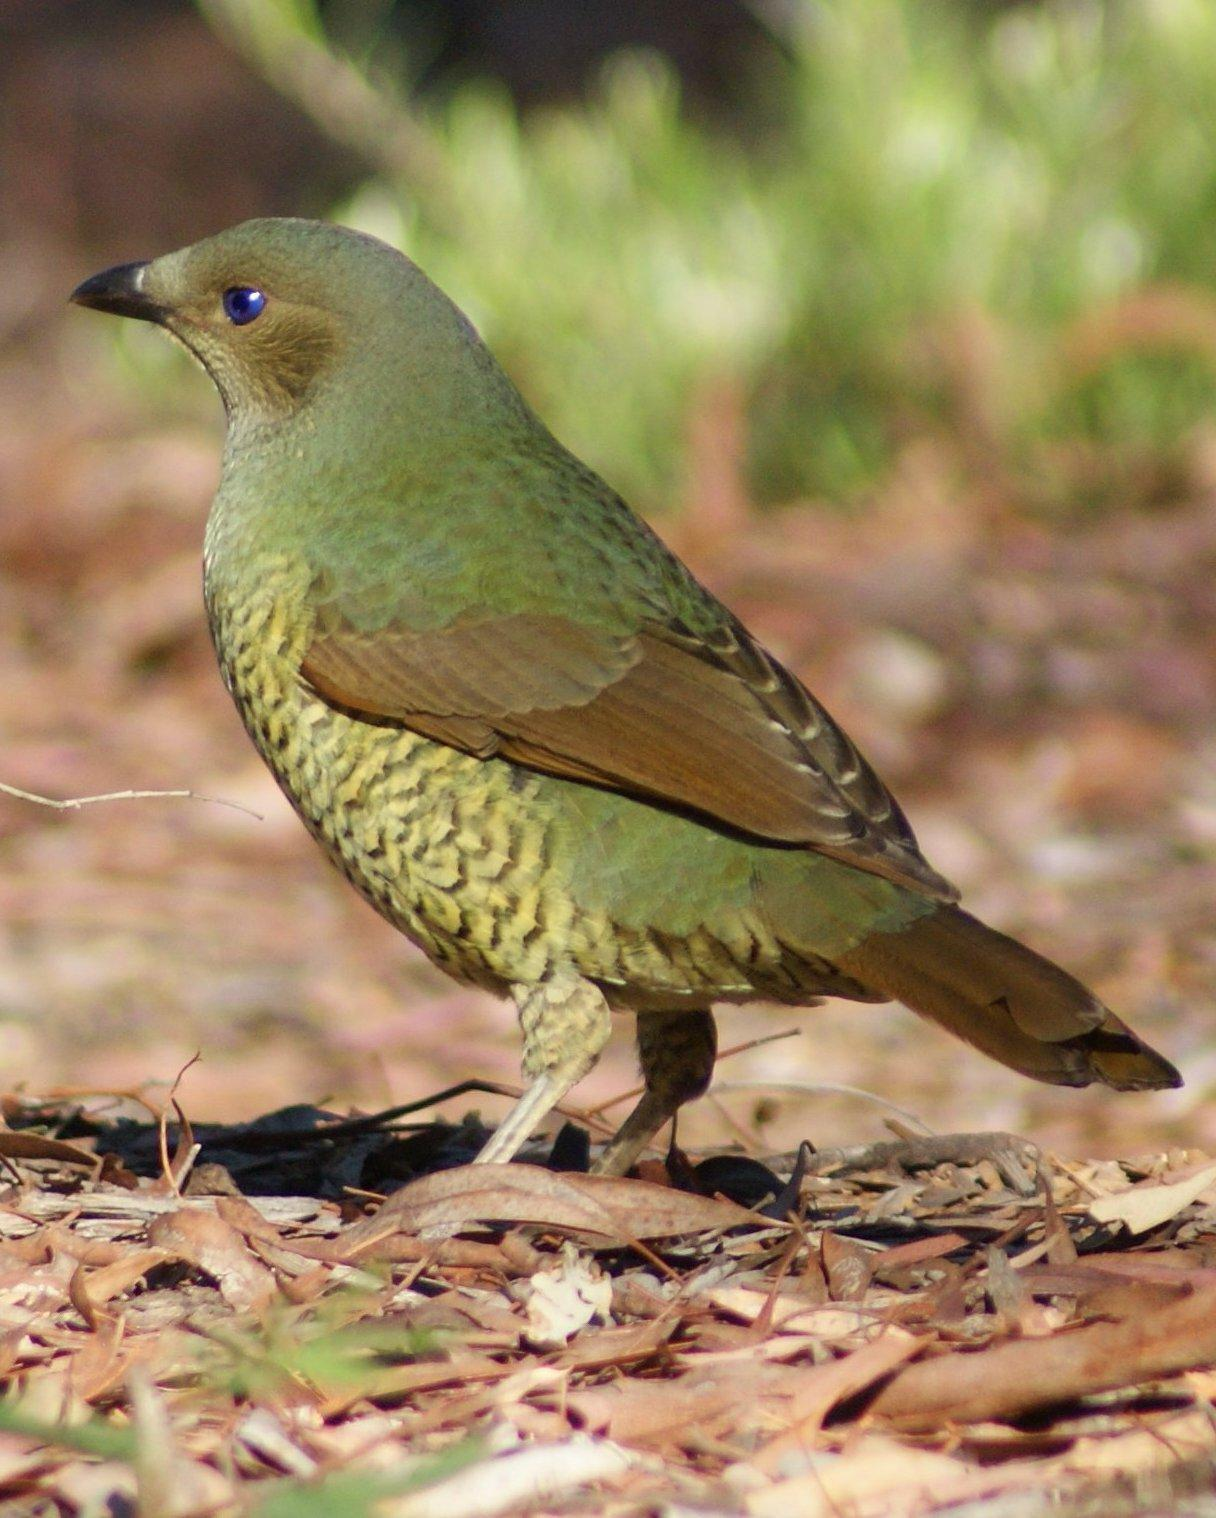 Satin Bowerbird Photo by Robin Oxley